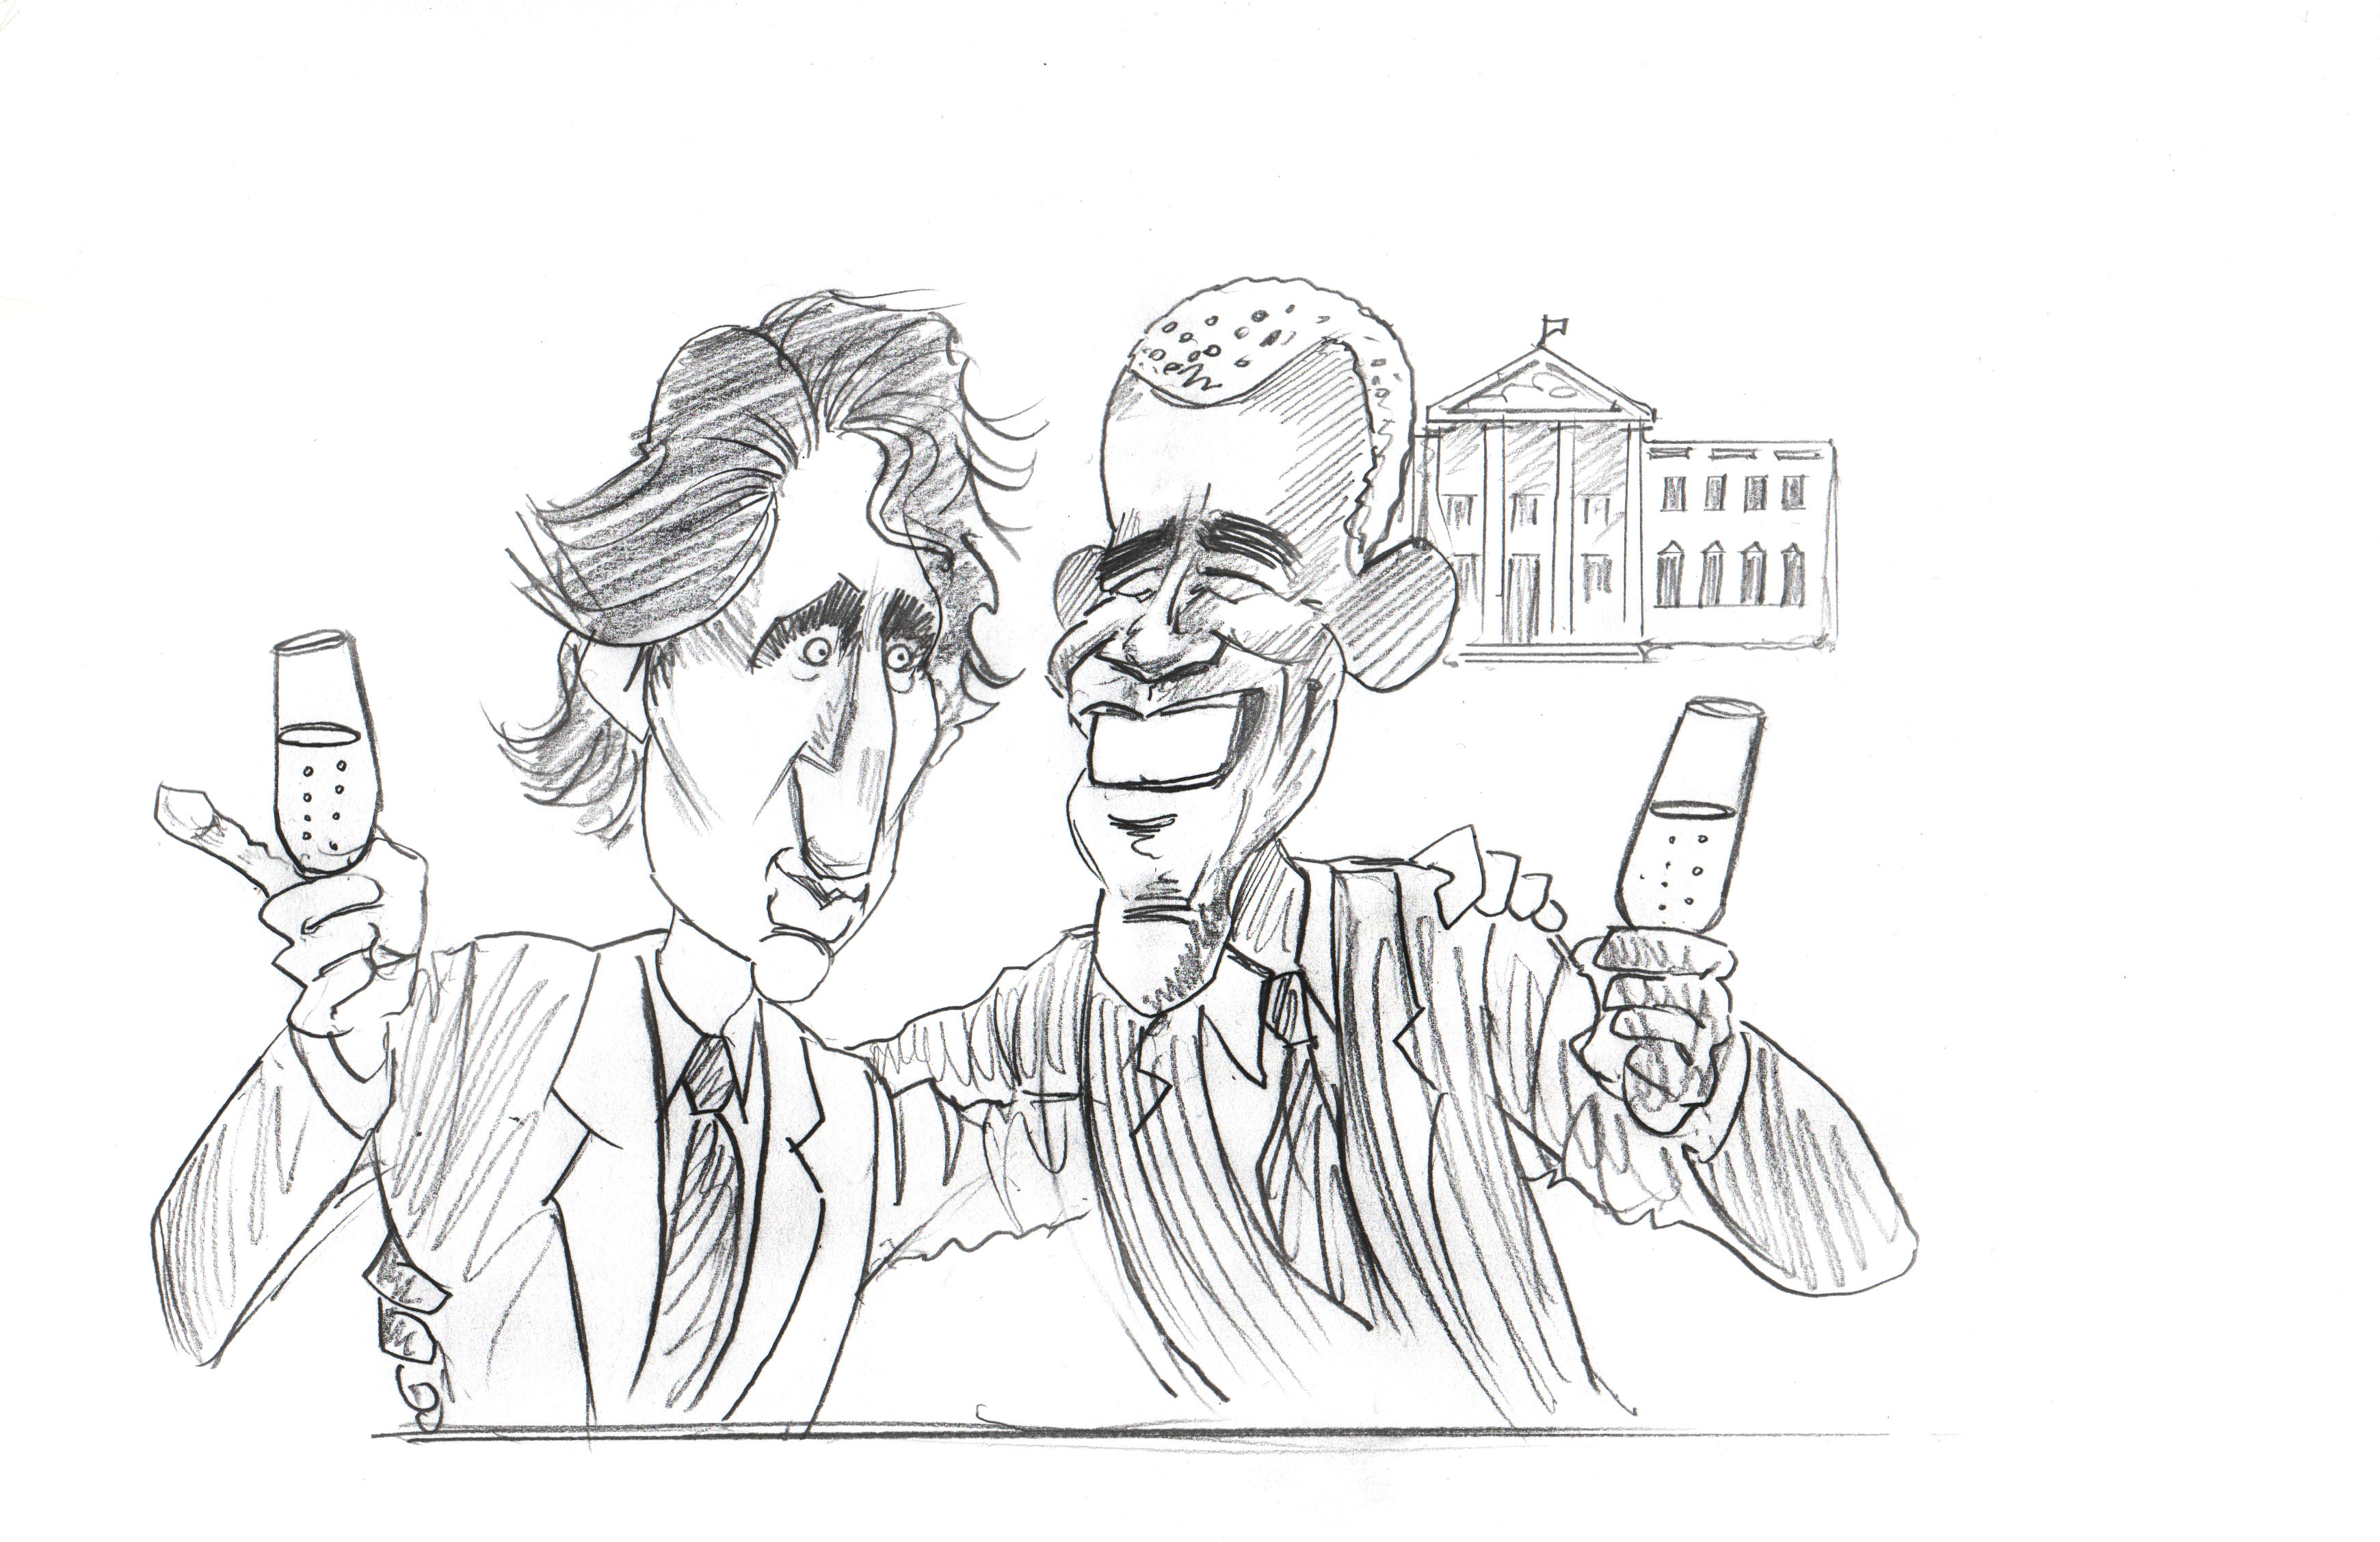 Pencil sketch of Justin Trudeau and Barak Obama drinking champagne